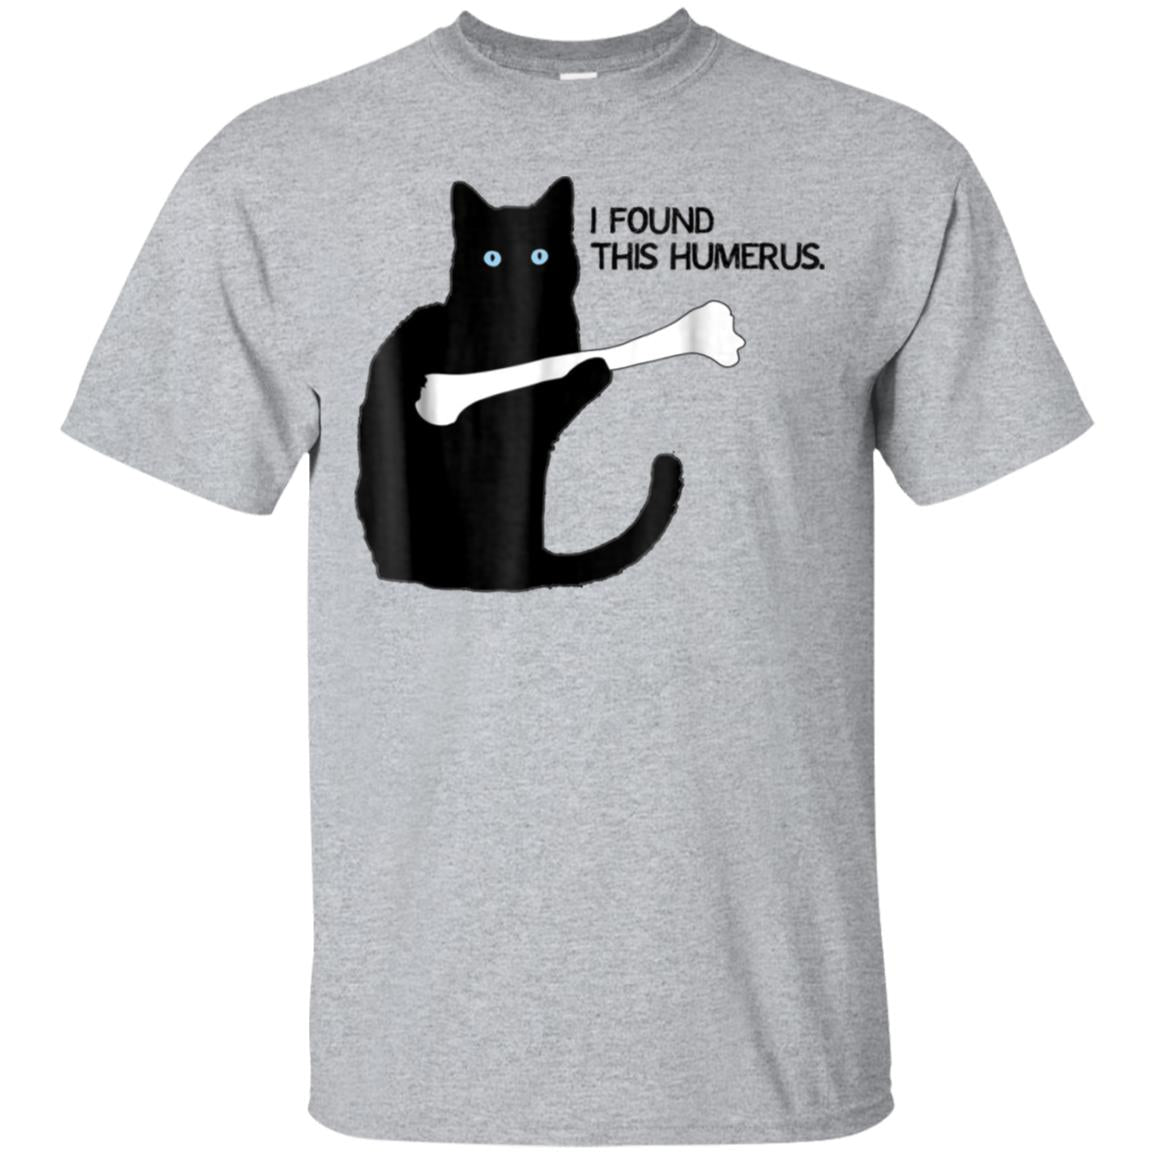 Blue Eyes Black I Found This Humerus Cat Humorous T-Shirt 99promocode